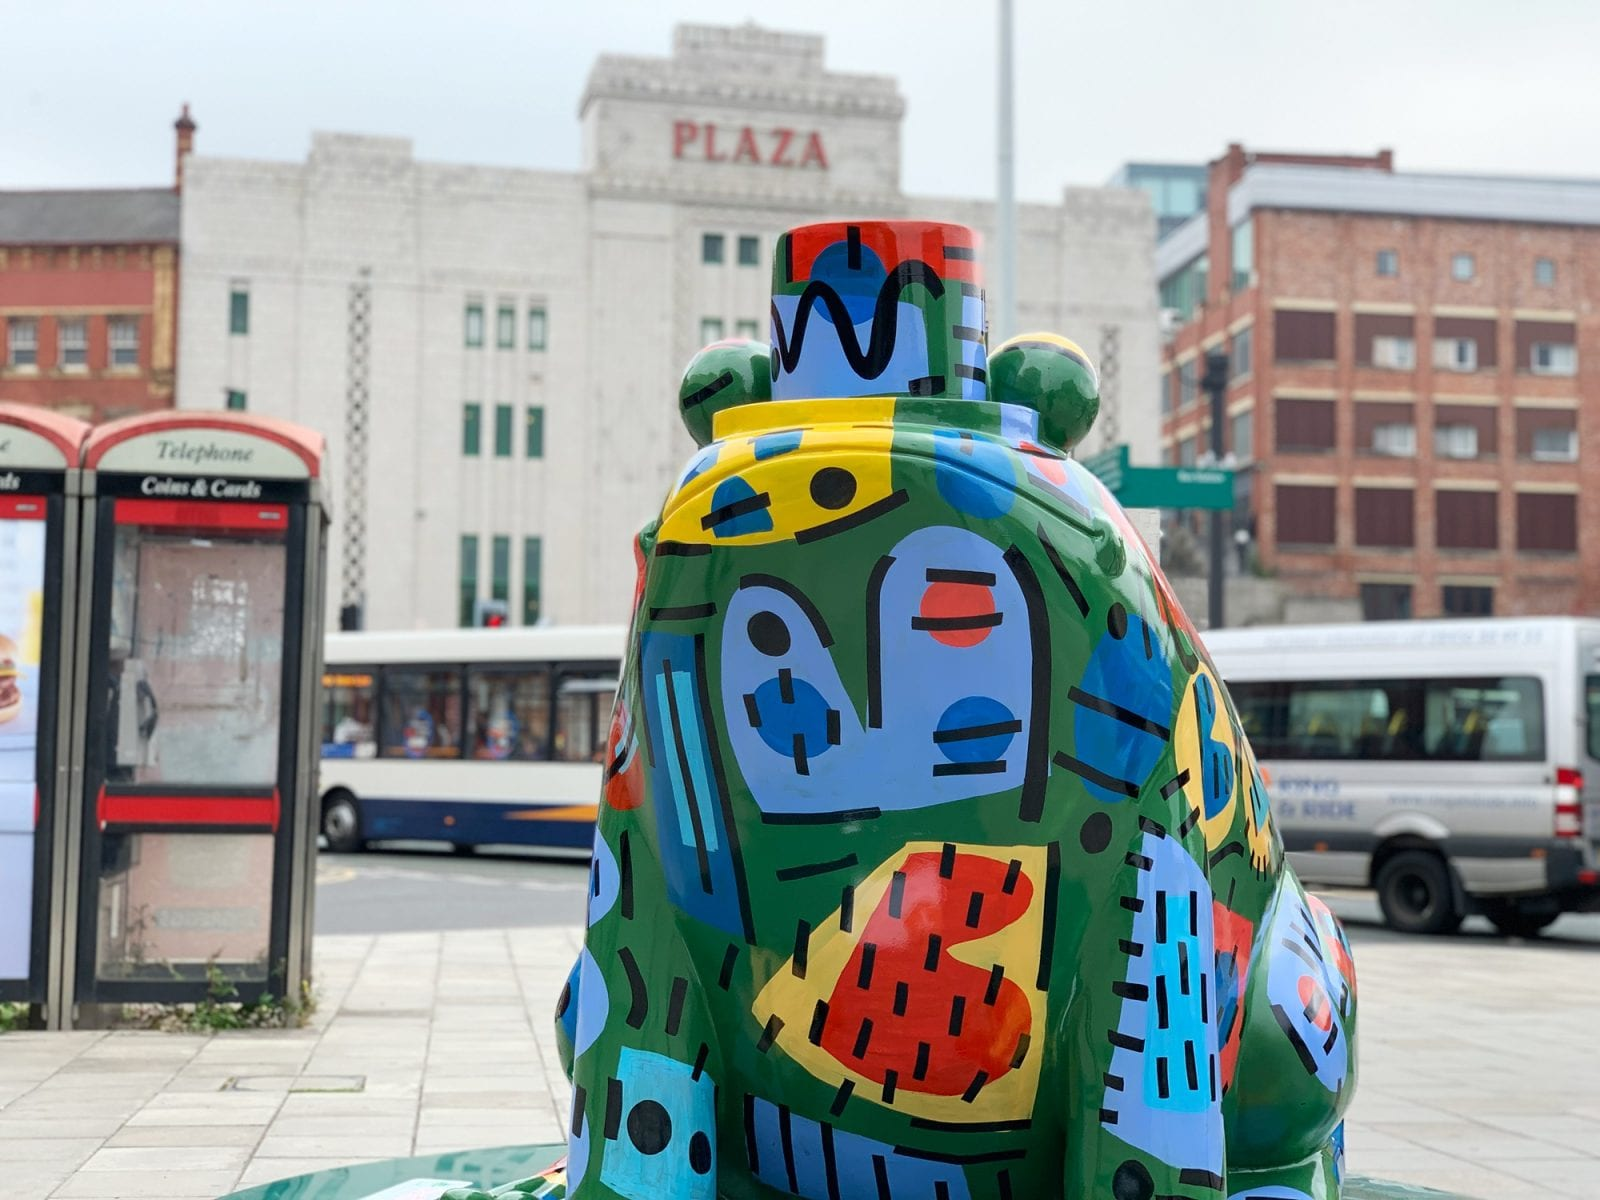 The giant colourful frogs are returning to Stockport town centre this summer, The Manc